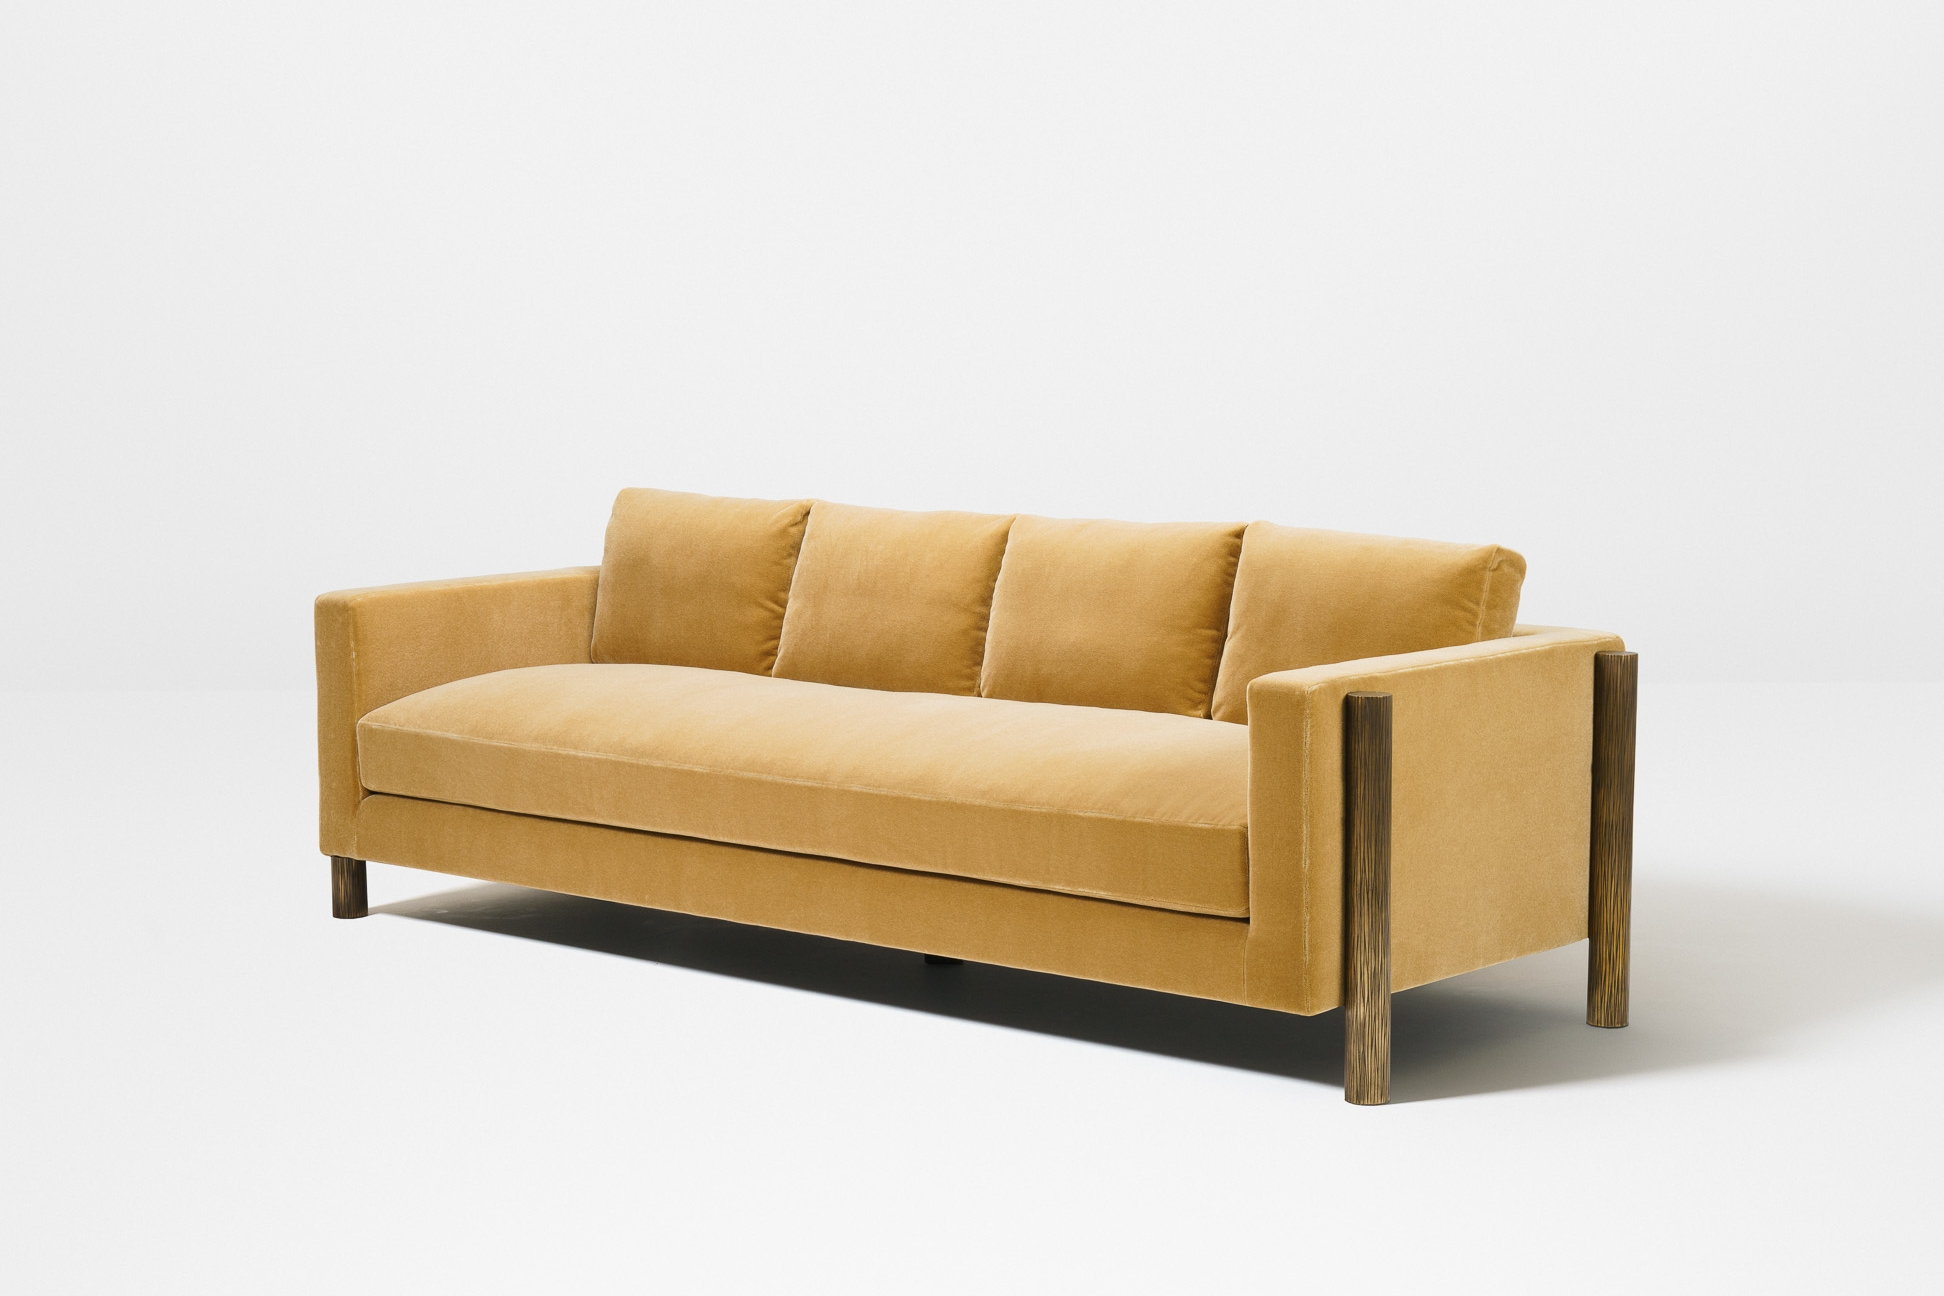 Turgi sofa - angle-LOW-RES.jpg